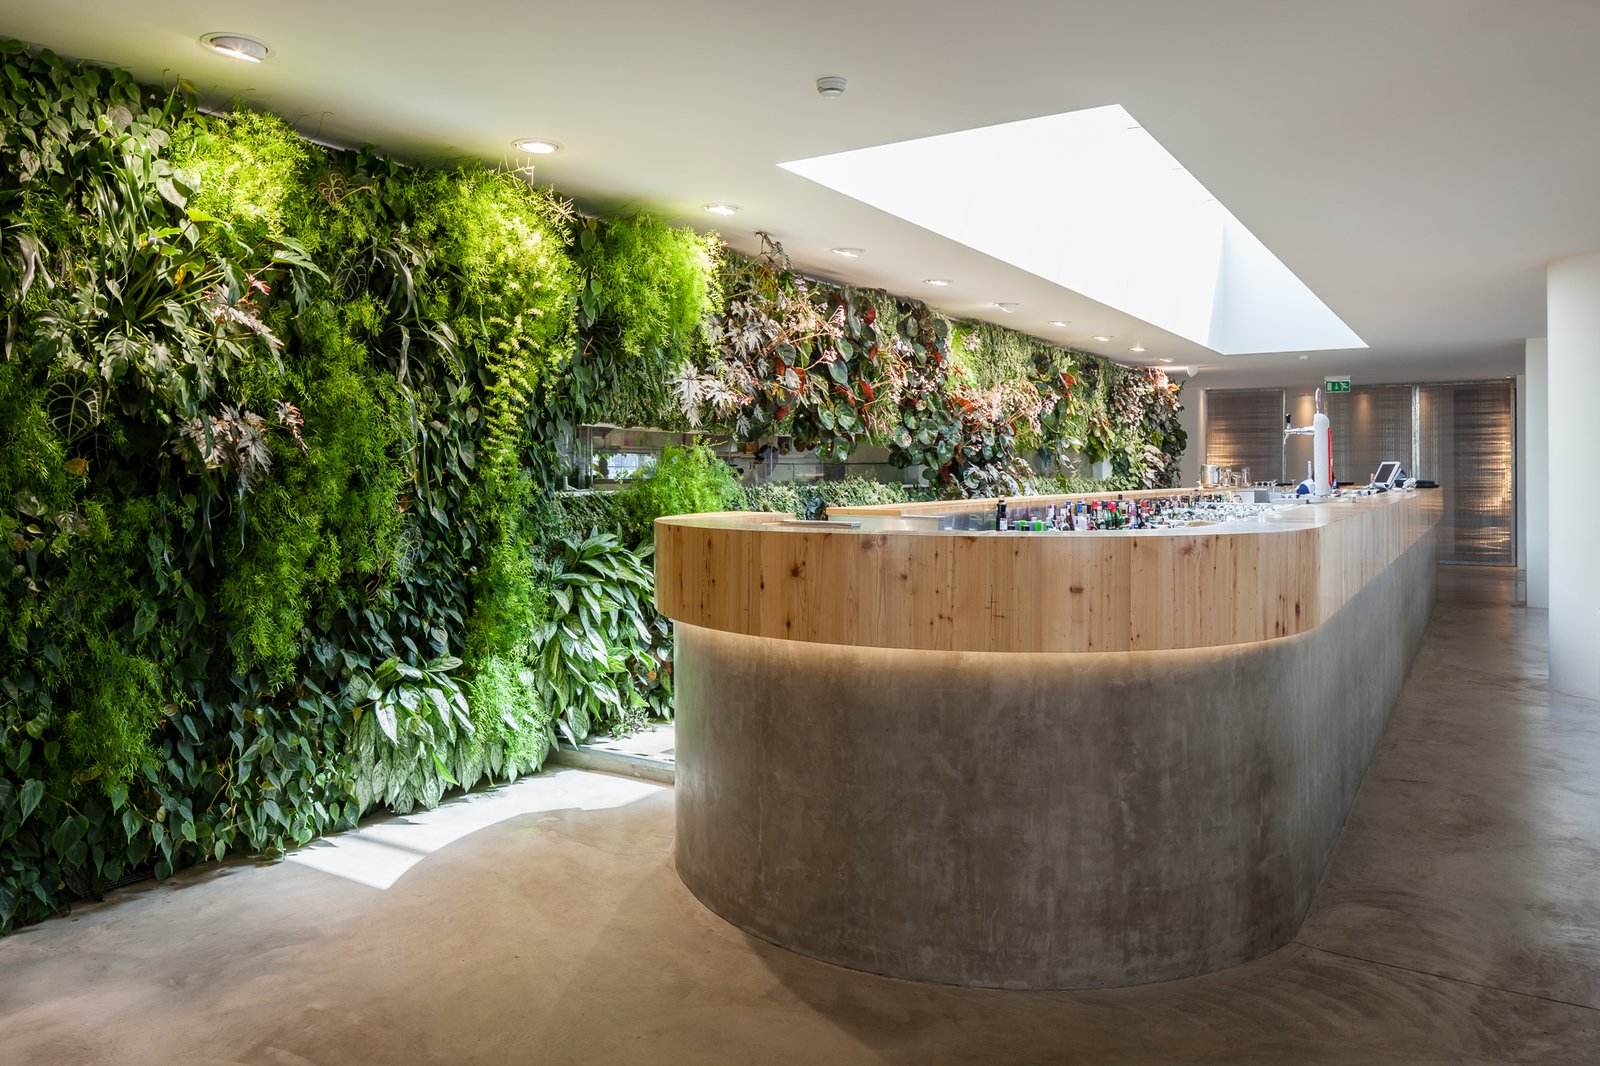 A custom bar sits underneath a retractable skylight. The material palette of the interior is simple, with white walls and concrete flooring.  Photo 4 of 6 in Vertical Gardens Spruce Up a Dusty Monument